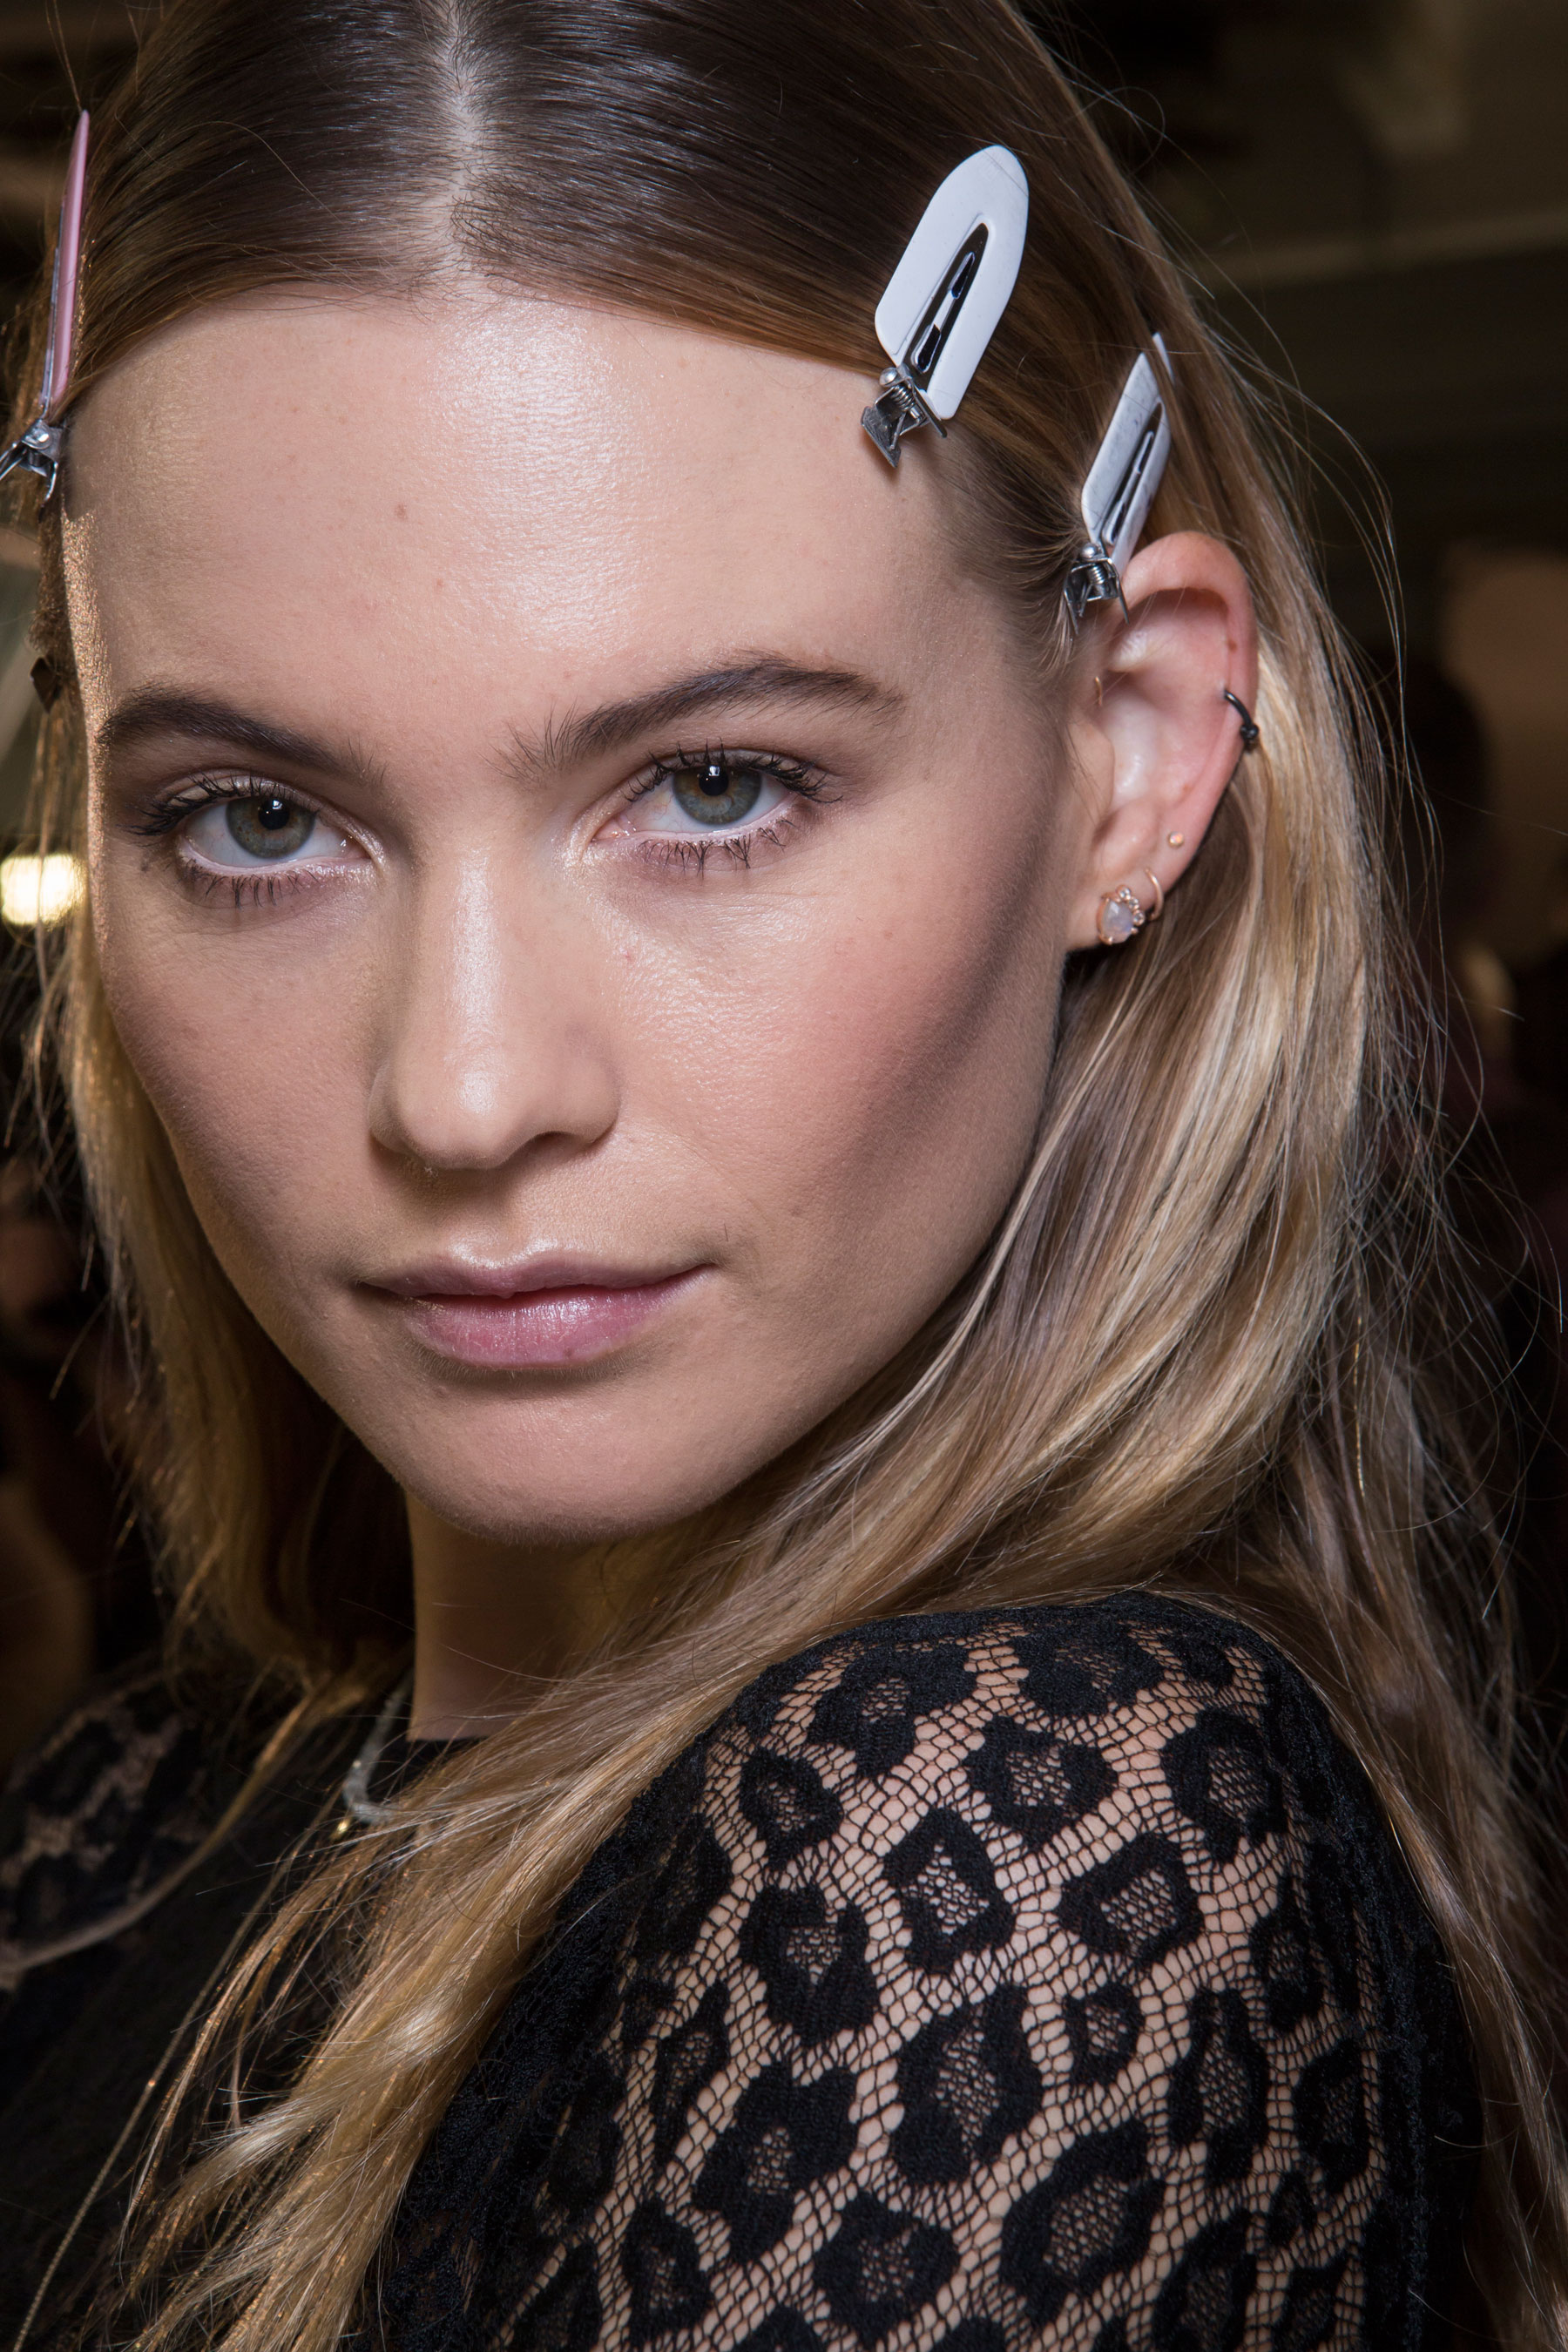 versace-backstage-beauty-spring-2016-fashion-show-the-impression-057